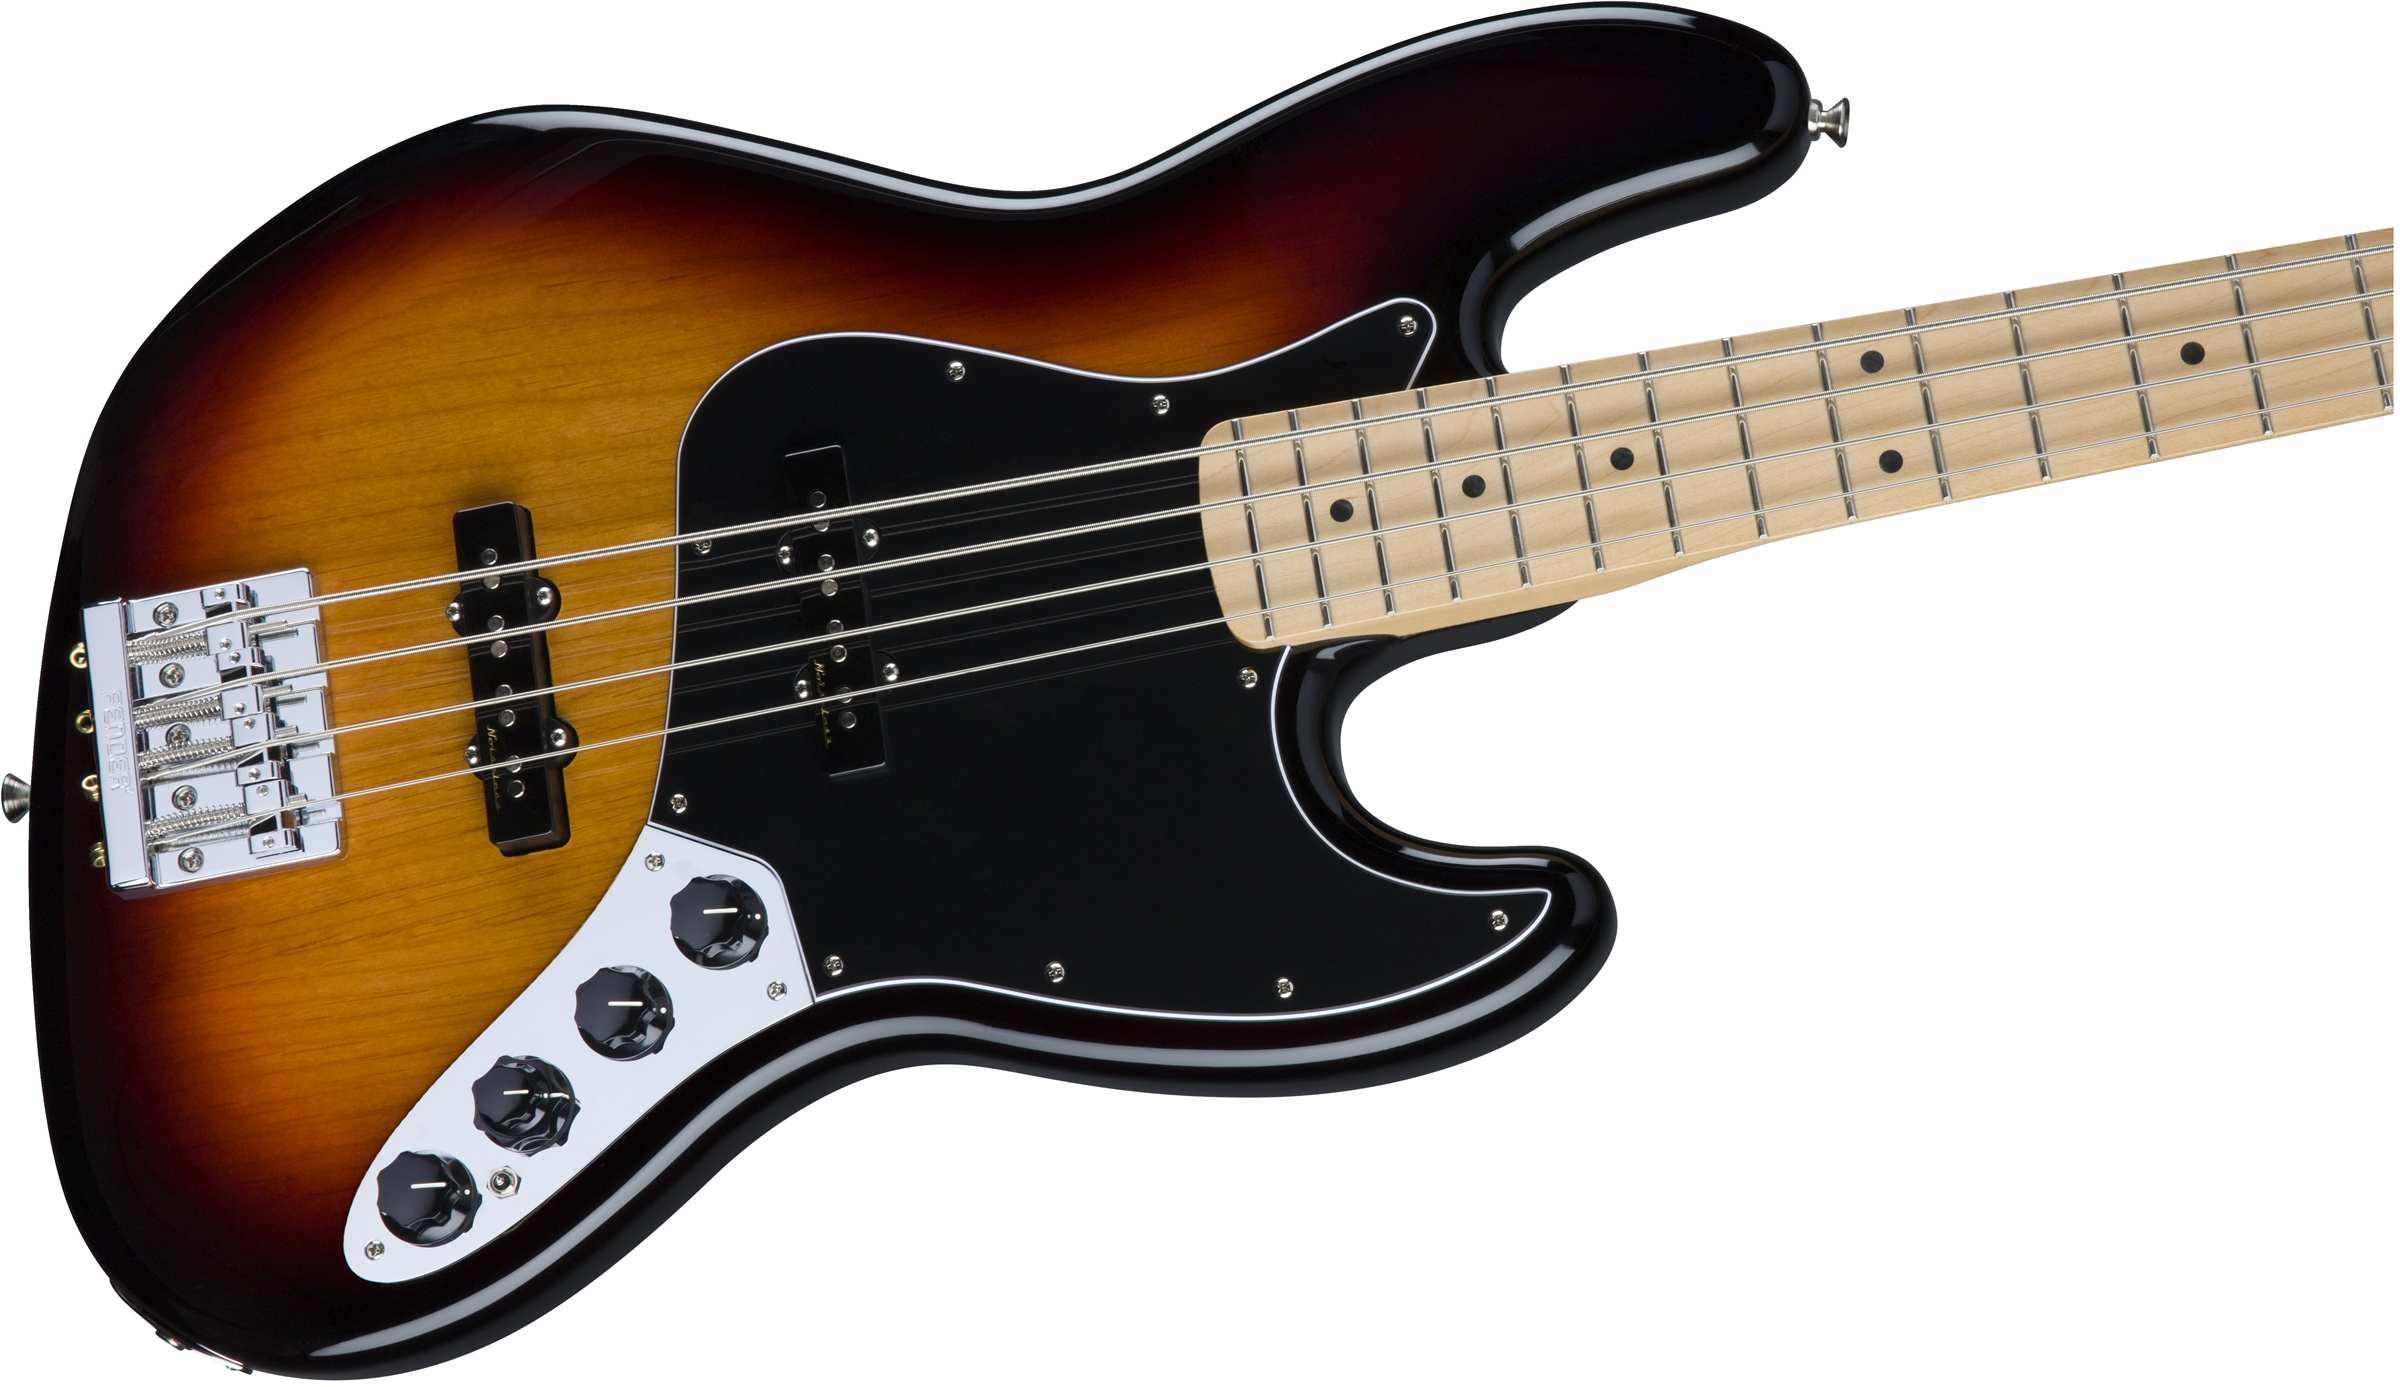 Fender active jazz bass wiring diagram wiring diagram fender active jazz bass wiring diagram images gallery asfbconference2016 Image collections